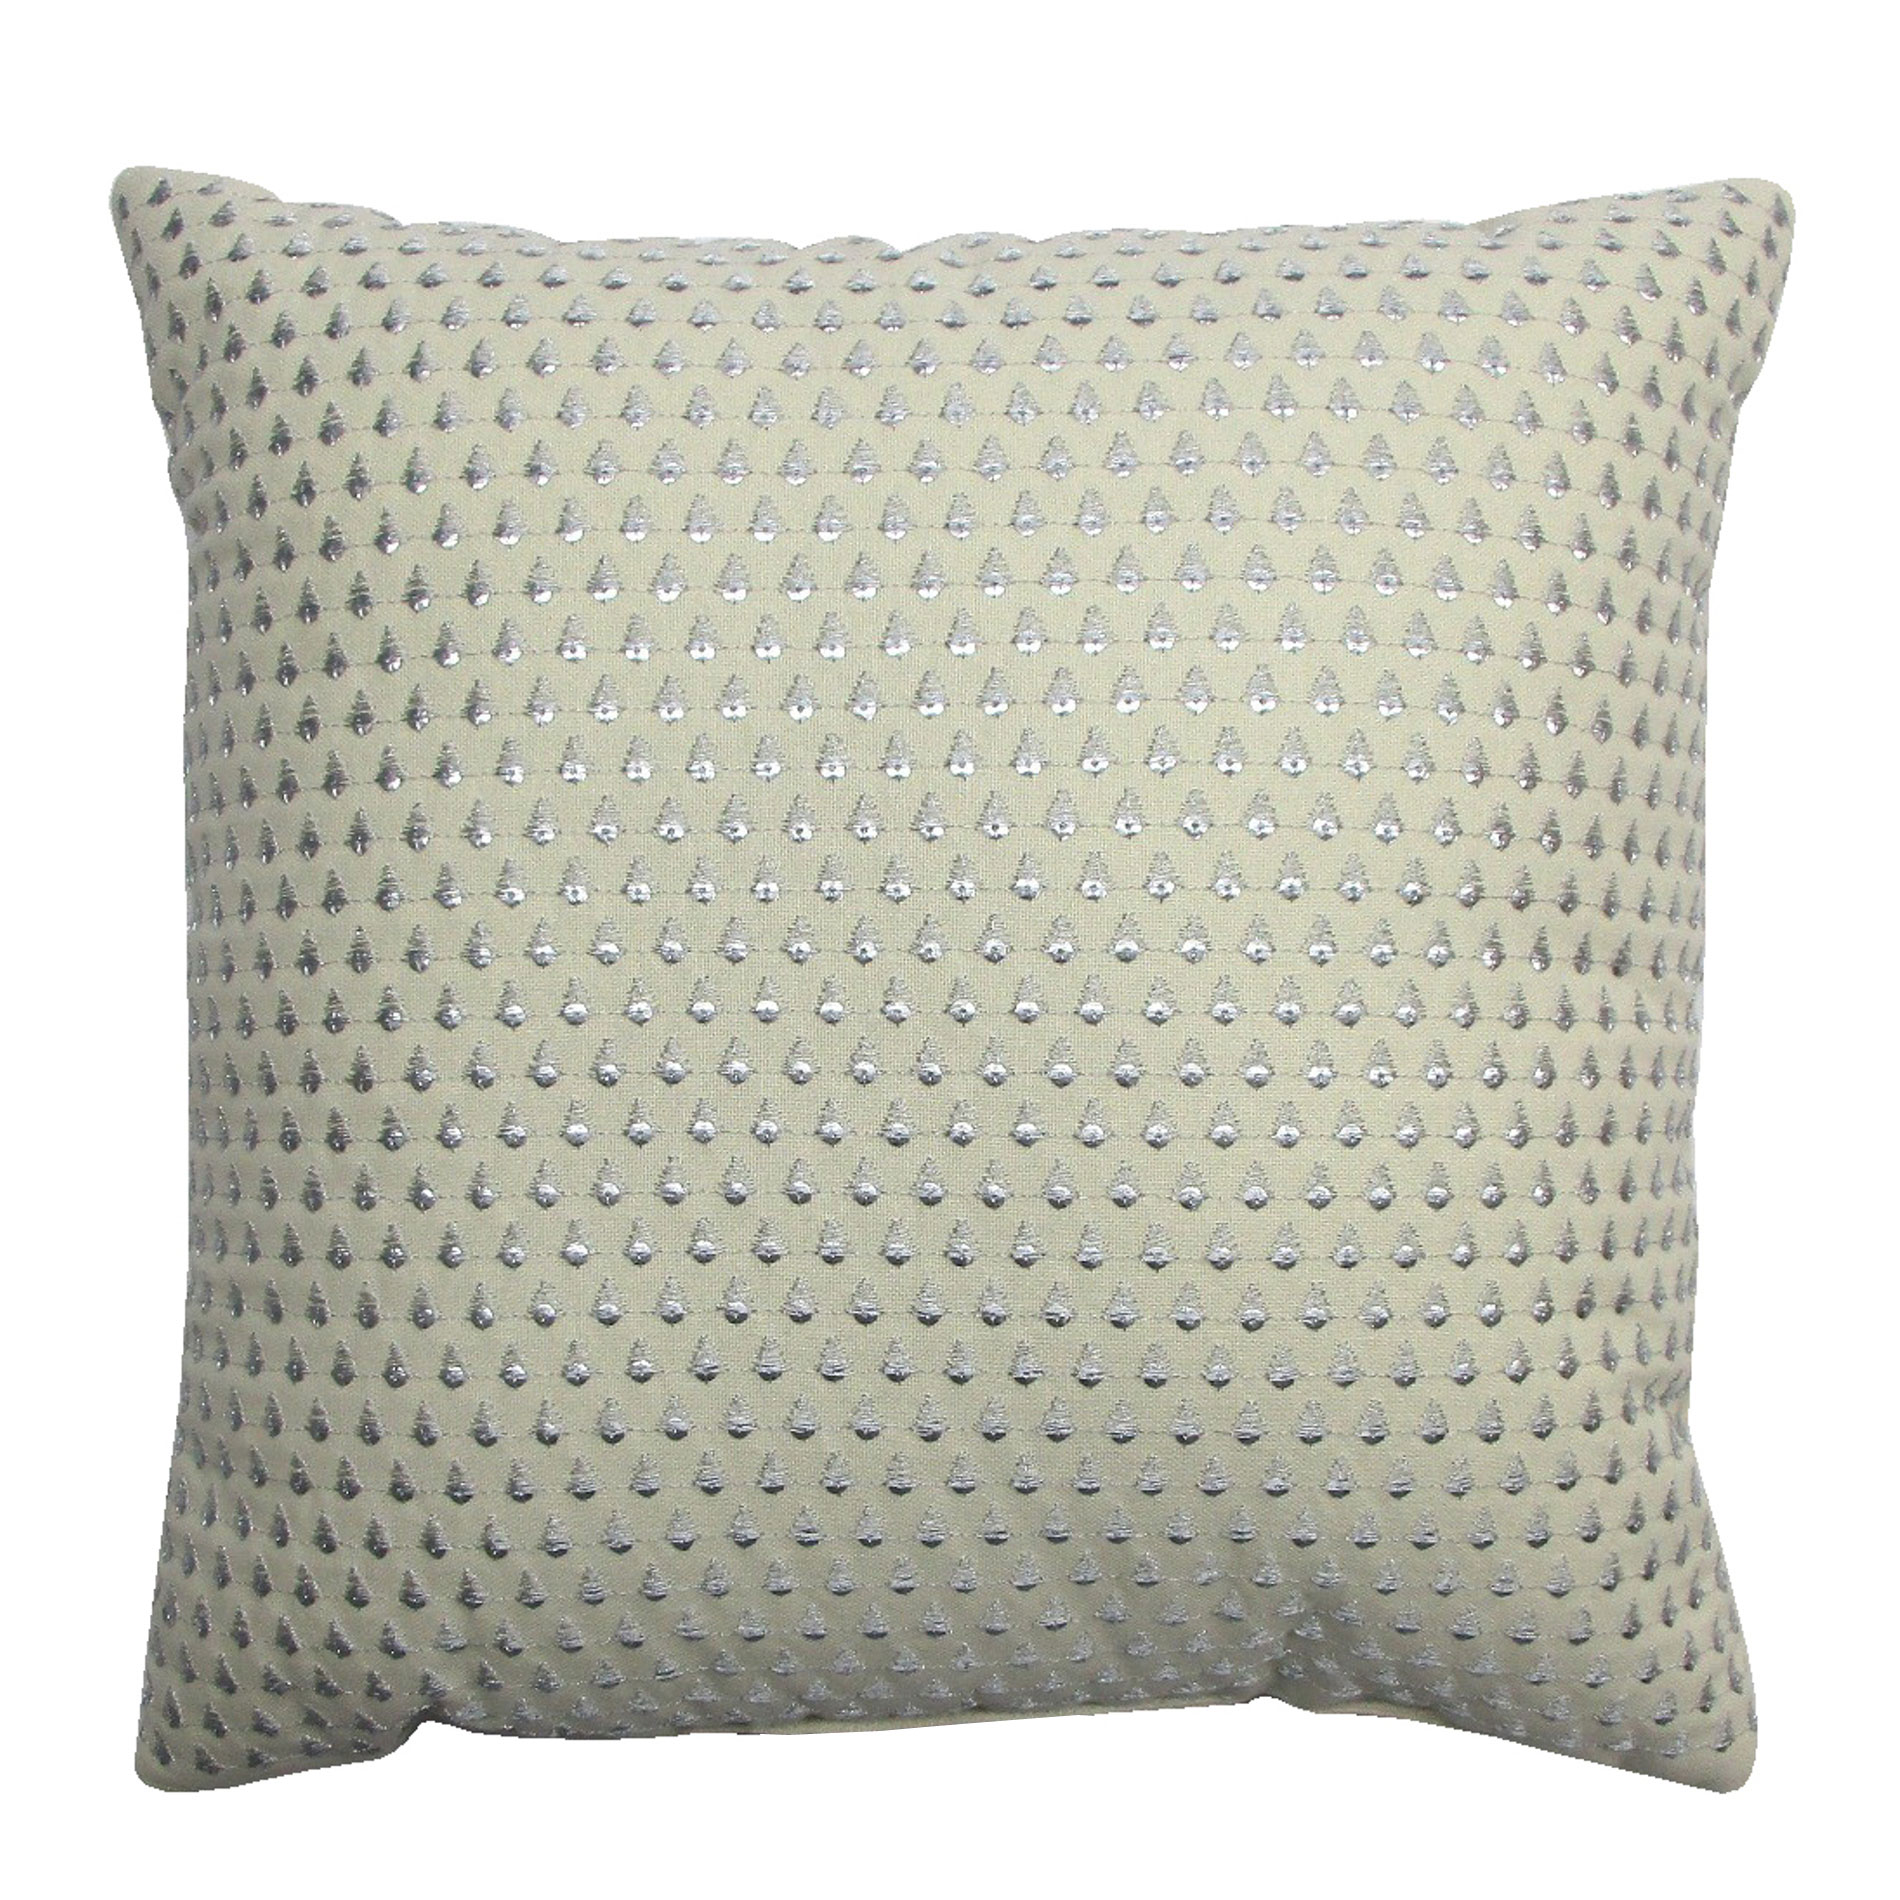 Decorative Pillows Kmart : Imported Cotton Decorative Pillow Kmart.com